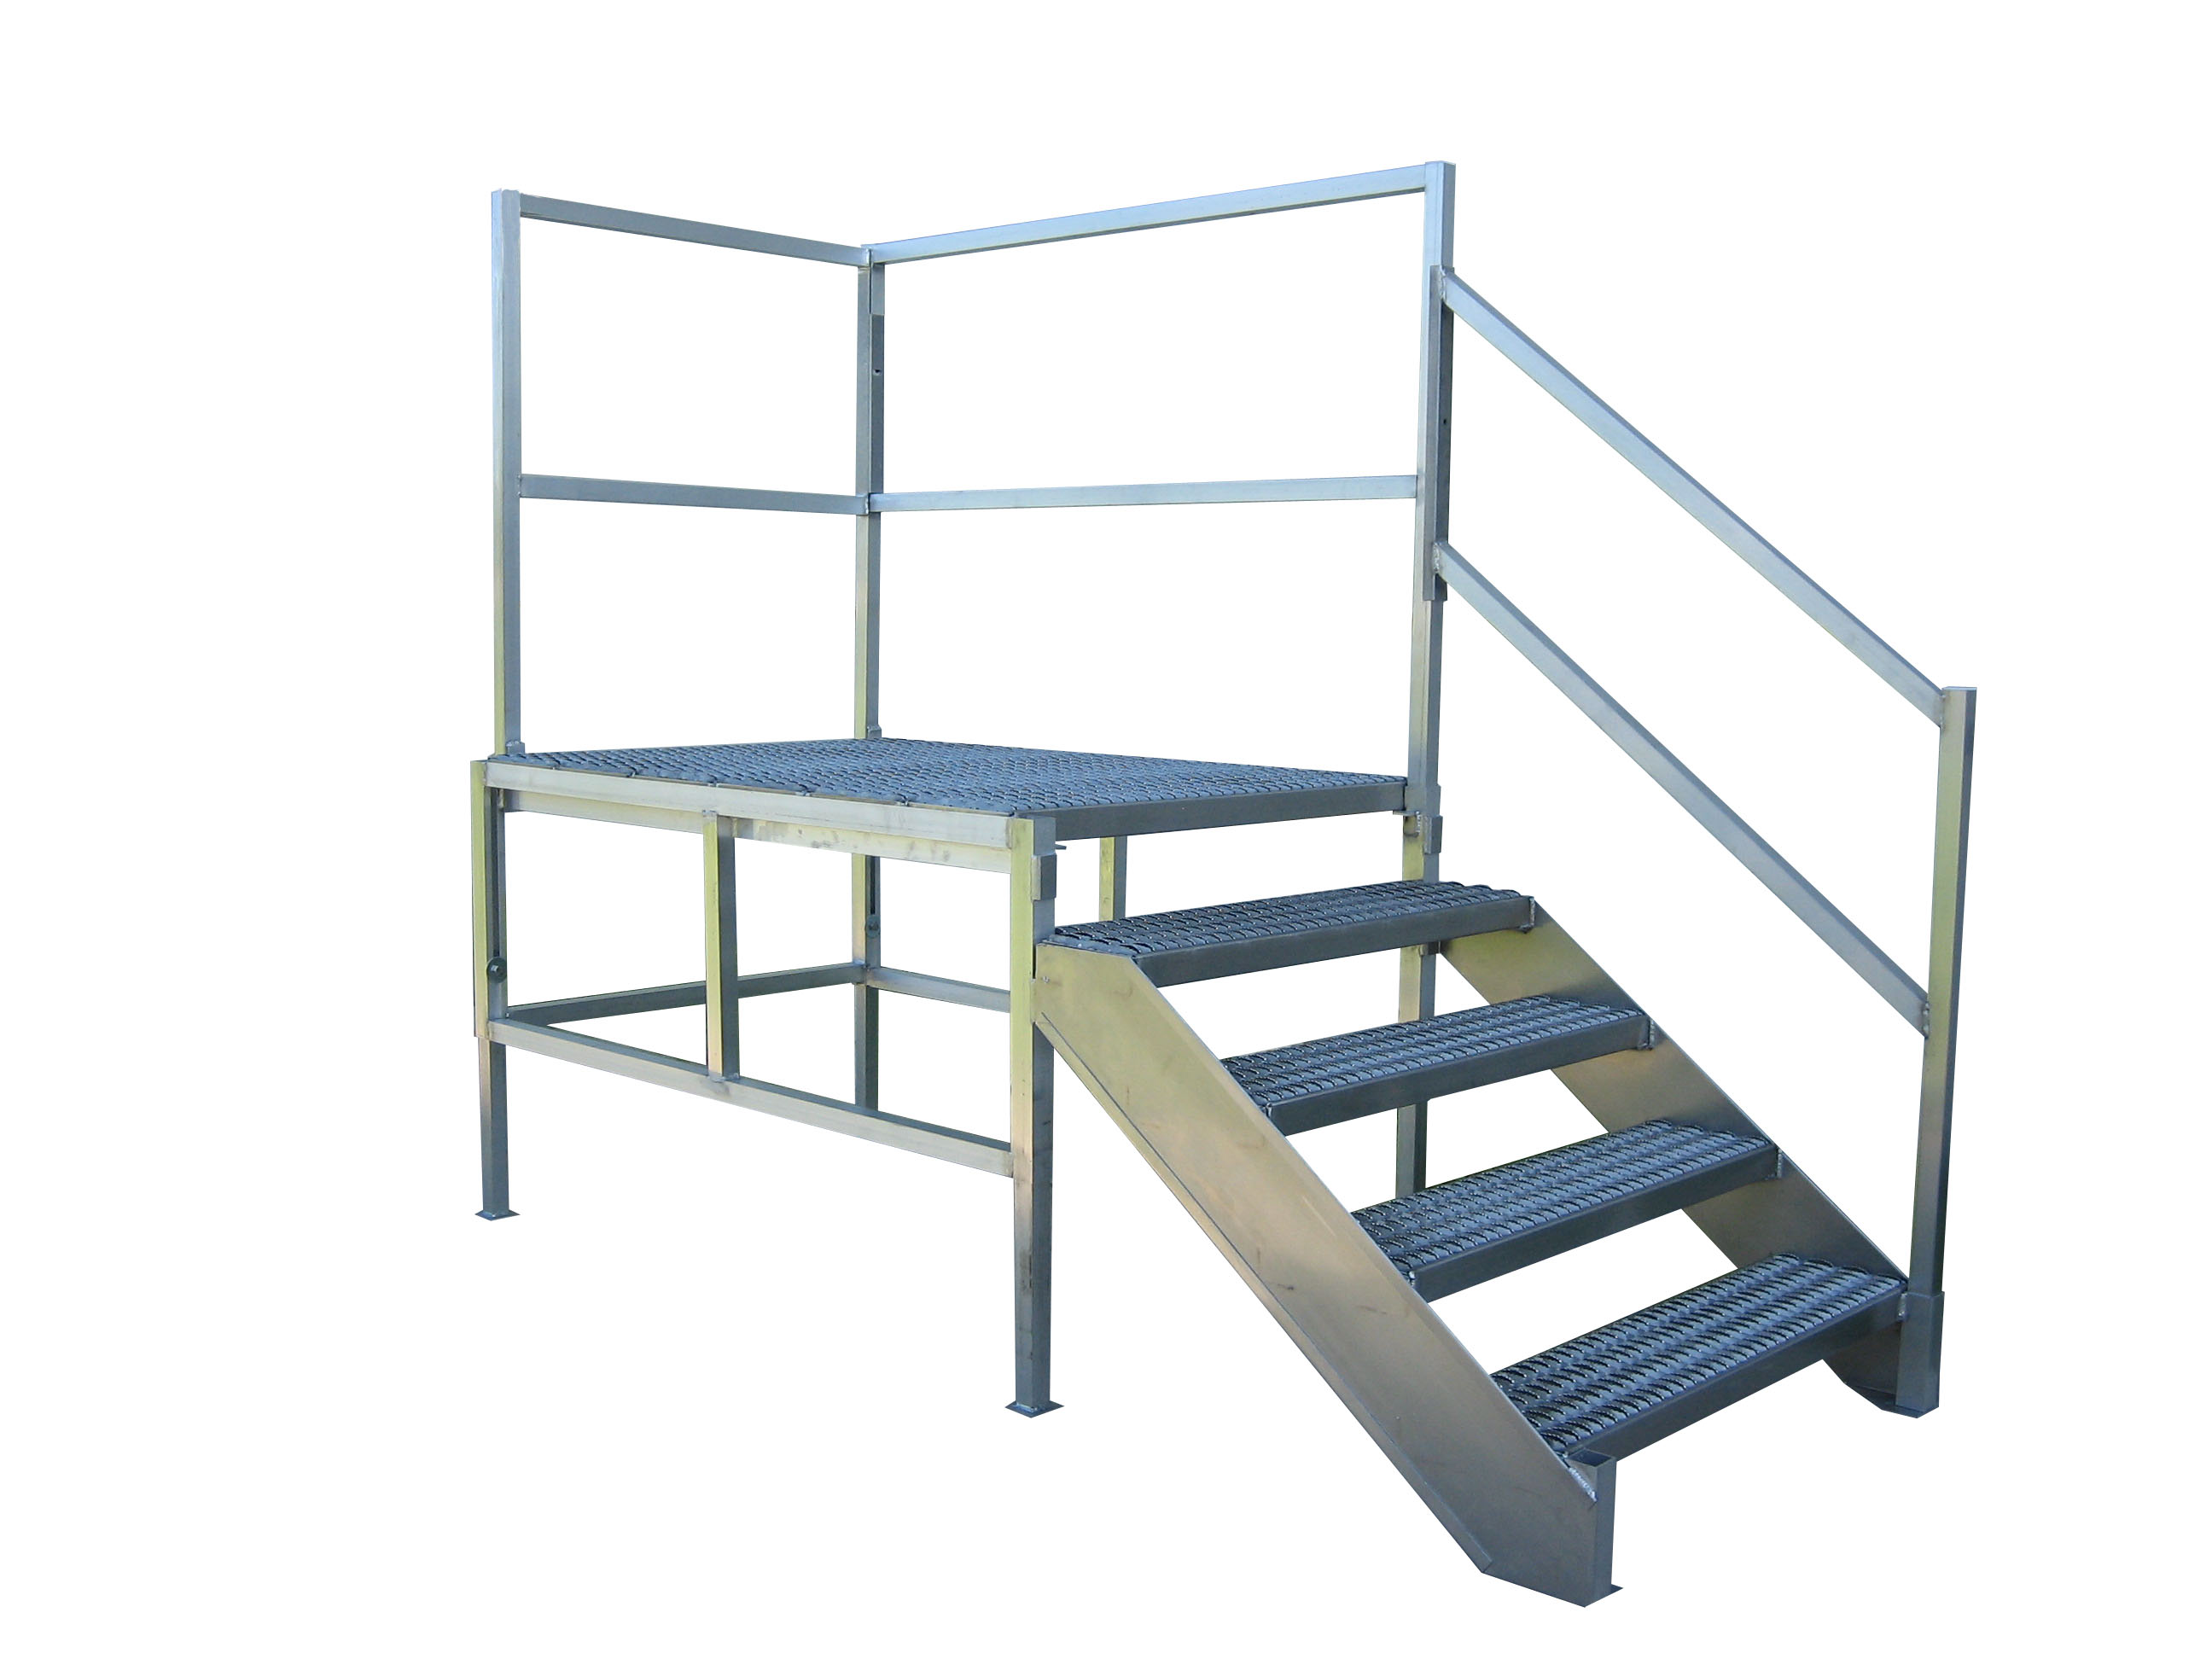 Us Safety Regulations For Weight In Bunk Beds